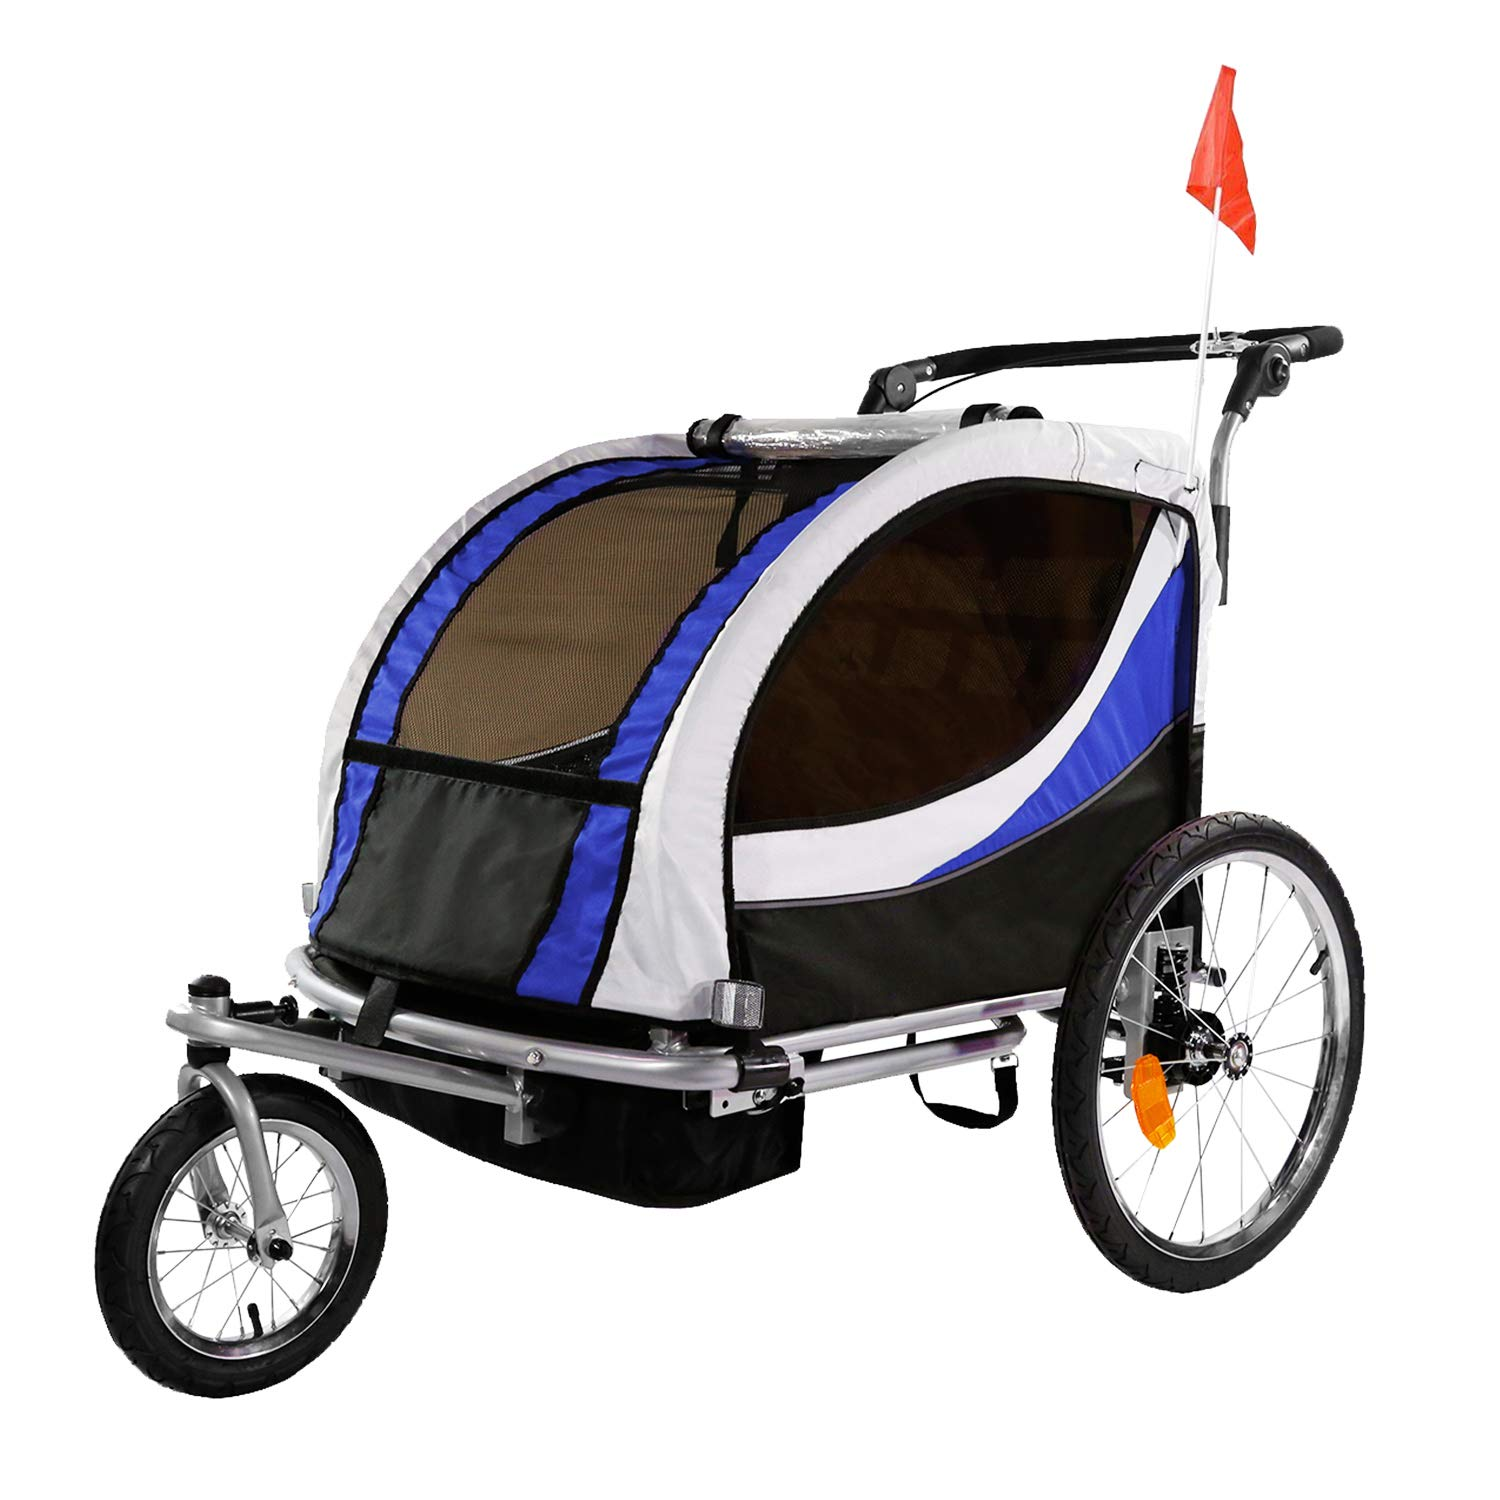 Clevr 3-in-1 Double 2 Seat Bicycle Bike Trailer Jogger Stroller for Kids Children | Foldable Collapsible w/Pivot Front Wheel, Blue by Clevr